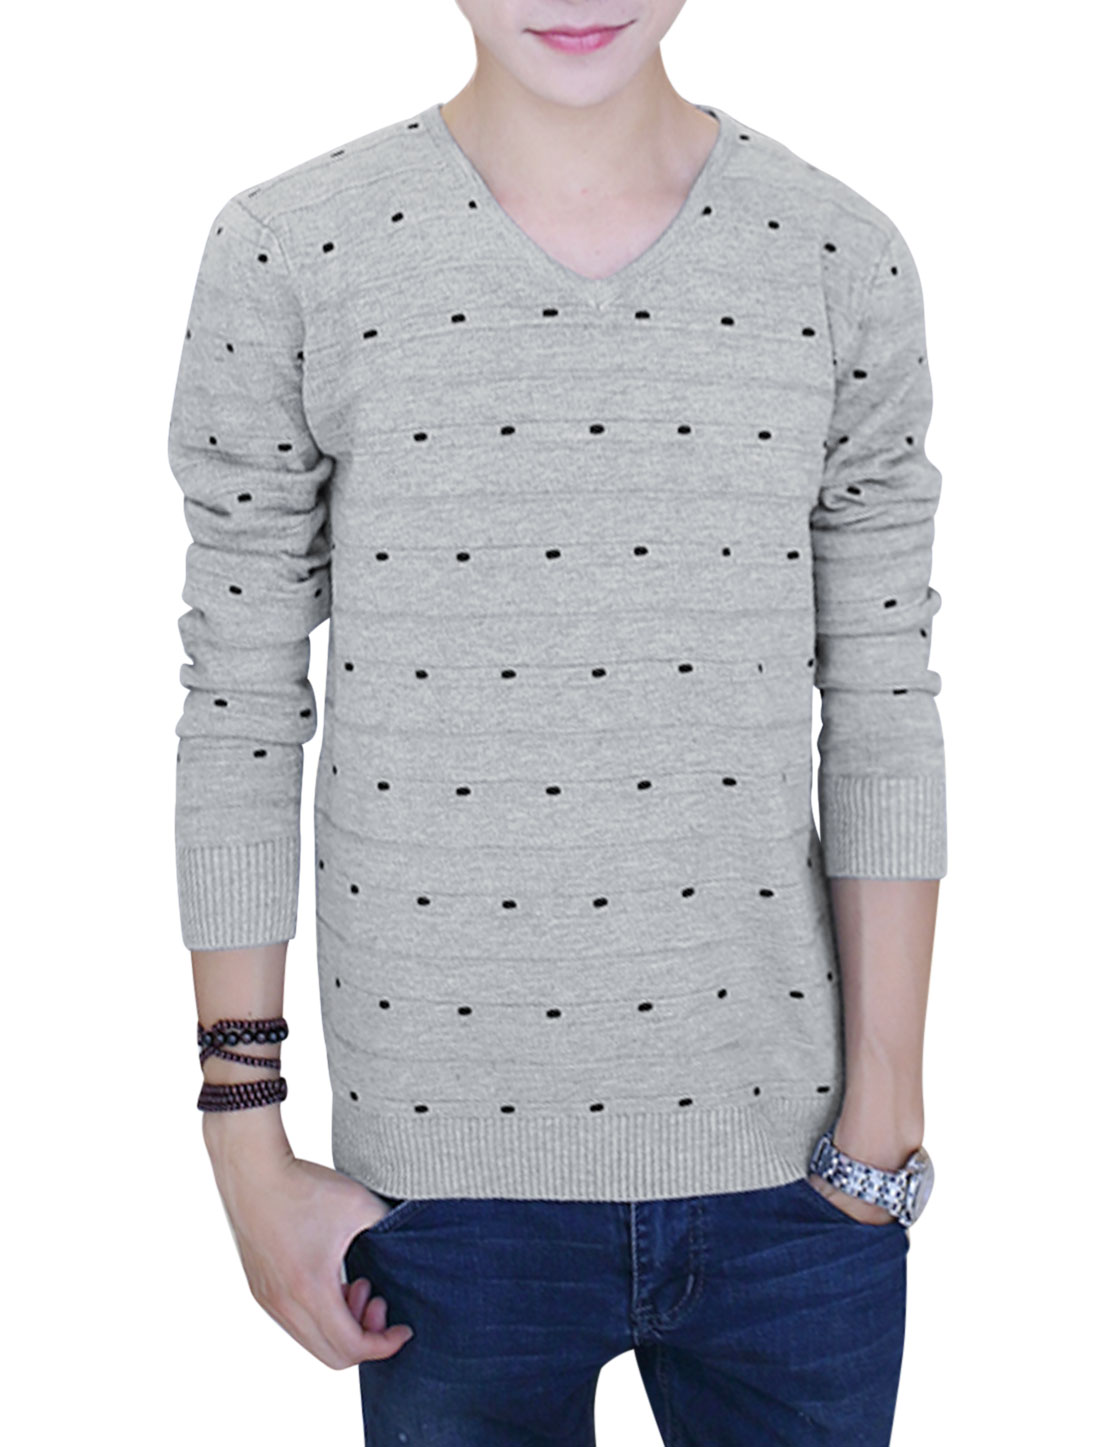 V Neck Dots Pattern Leisure Knitted Tops for Men Lihgt Gray S